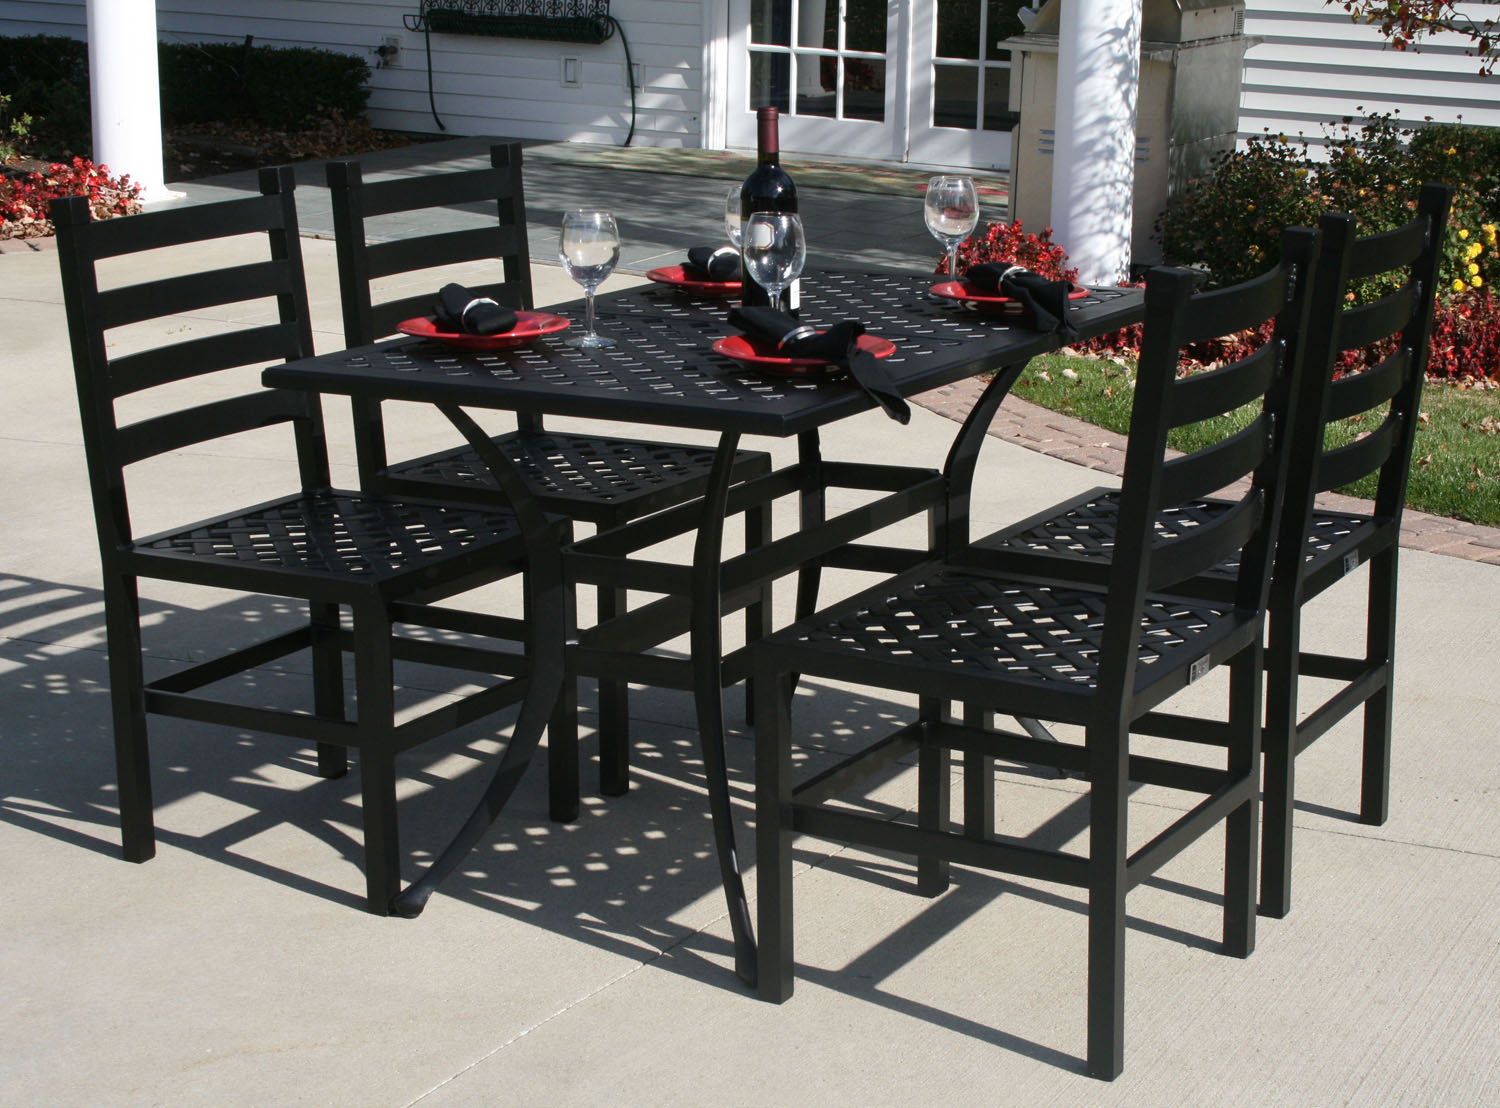 collection garden furniture accessories pictures. Ansley Luxury 4-Person All Welded Cast Aluminum Patio Furniture Dining Set Collection Garden Accessories Pictures M